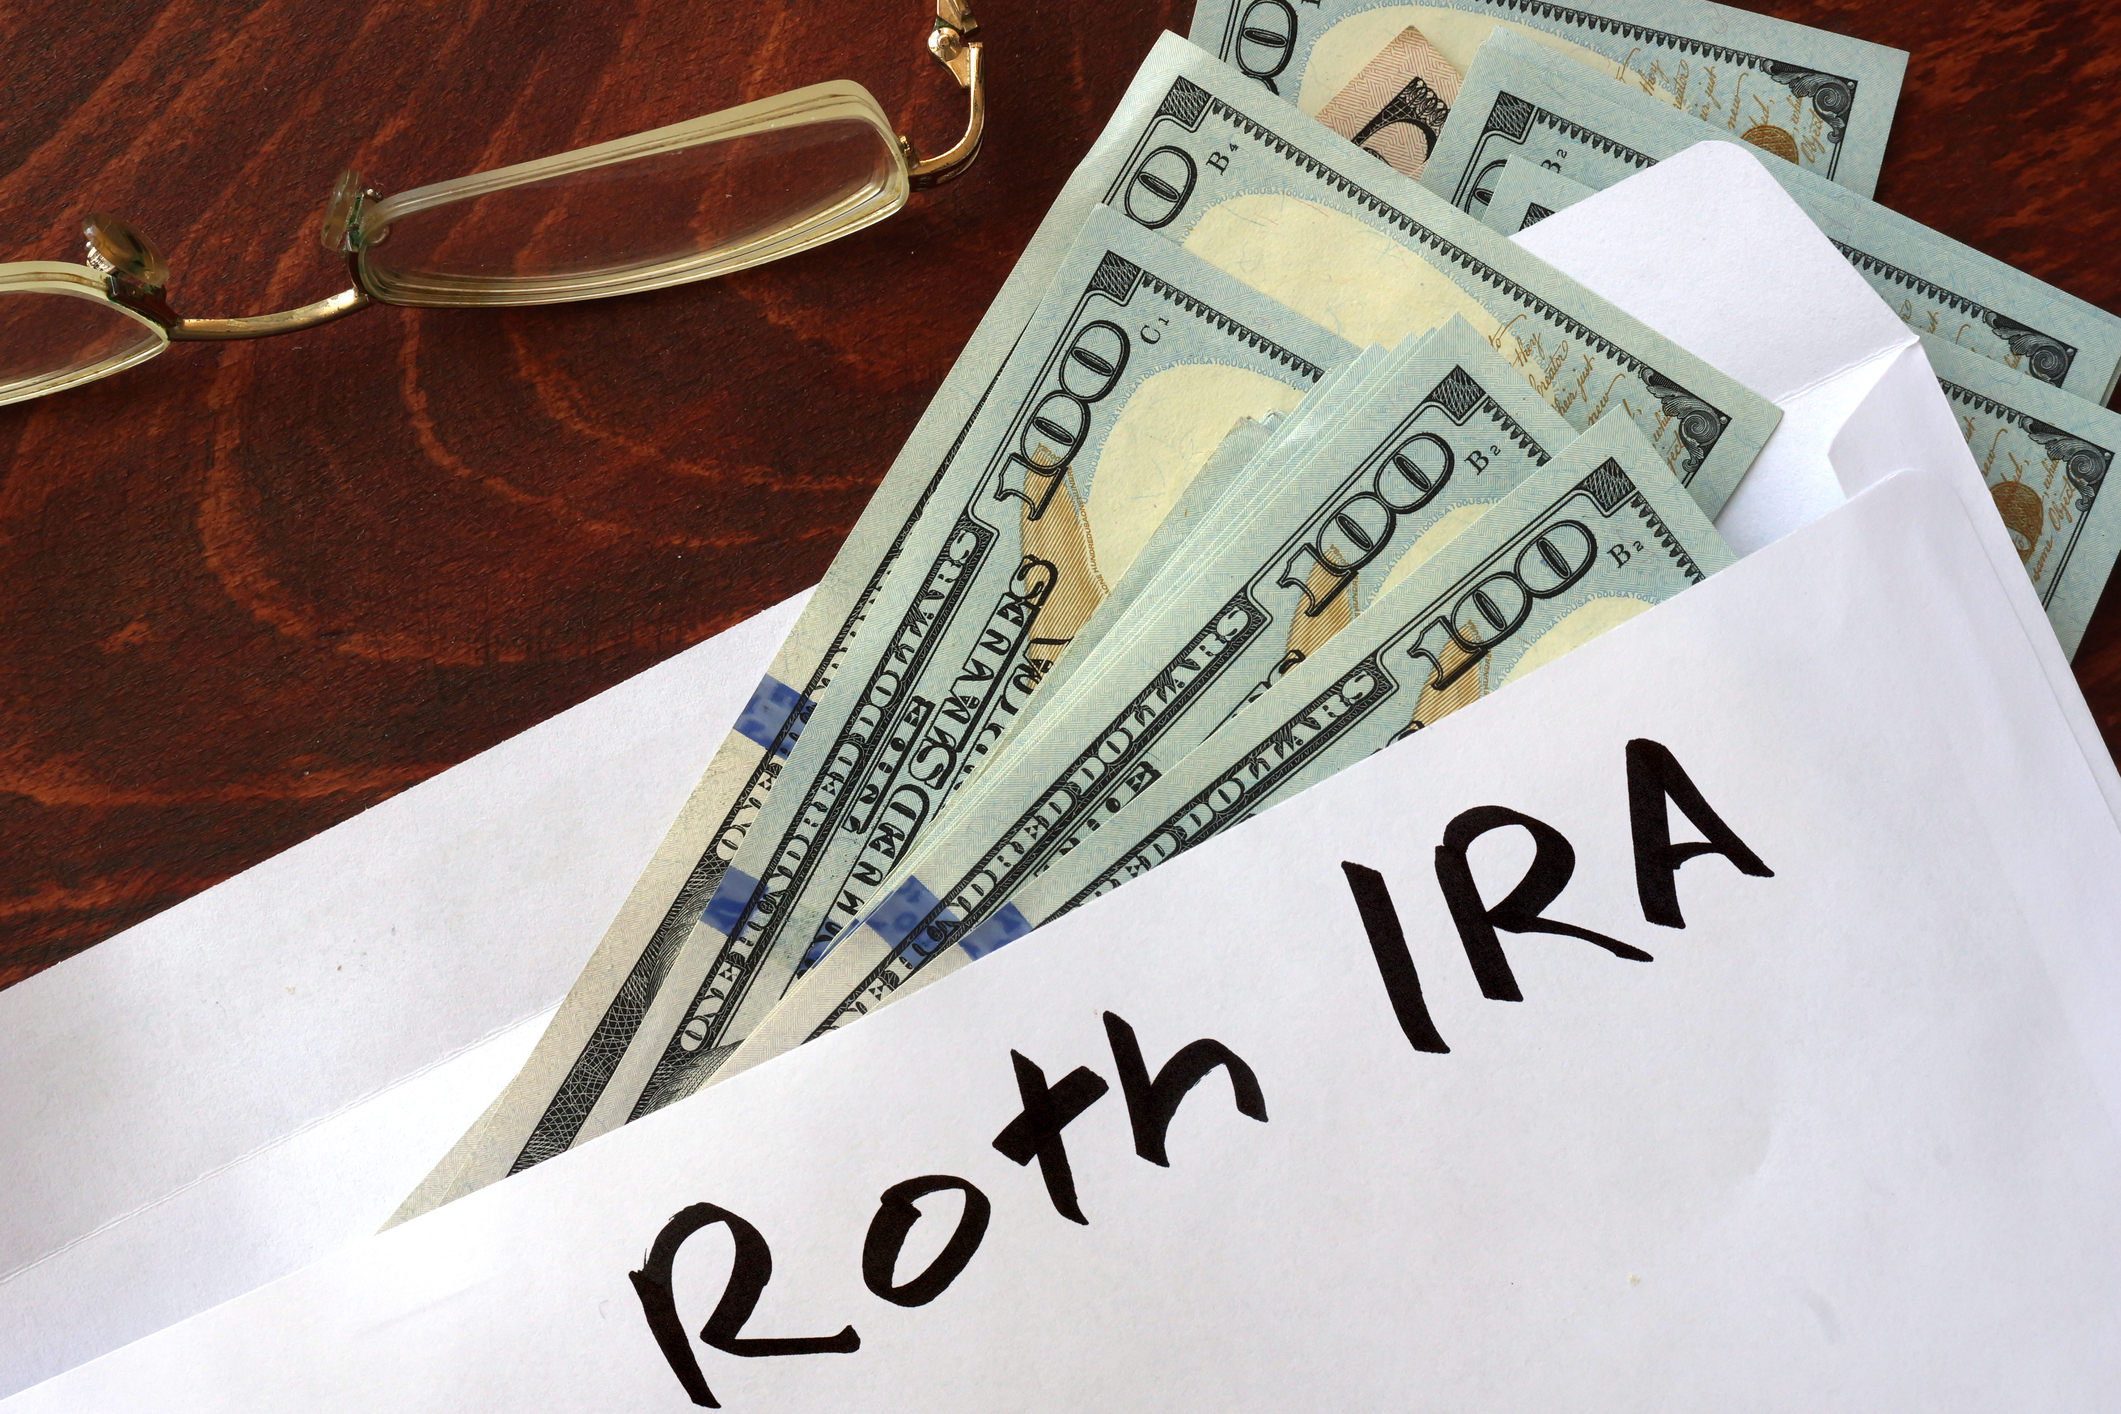 An envelope with Roth IRA written on it and $100 bills falling out.